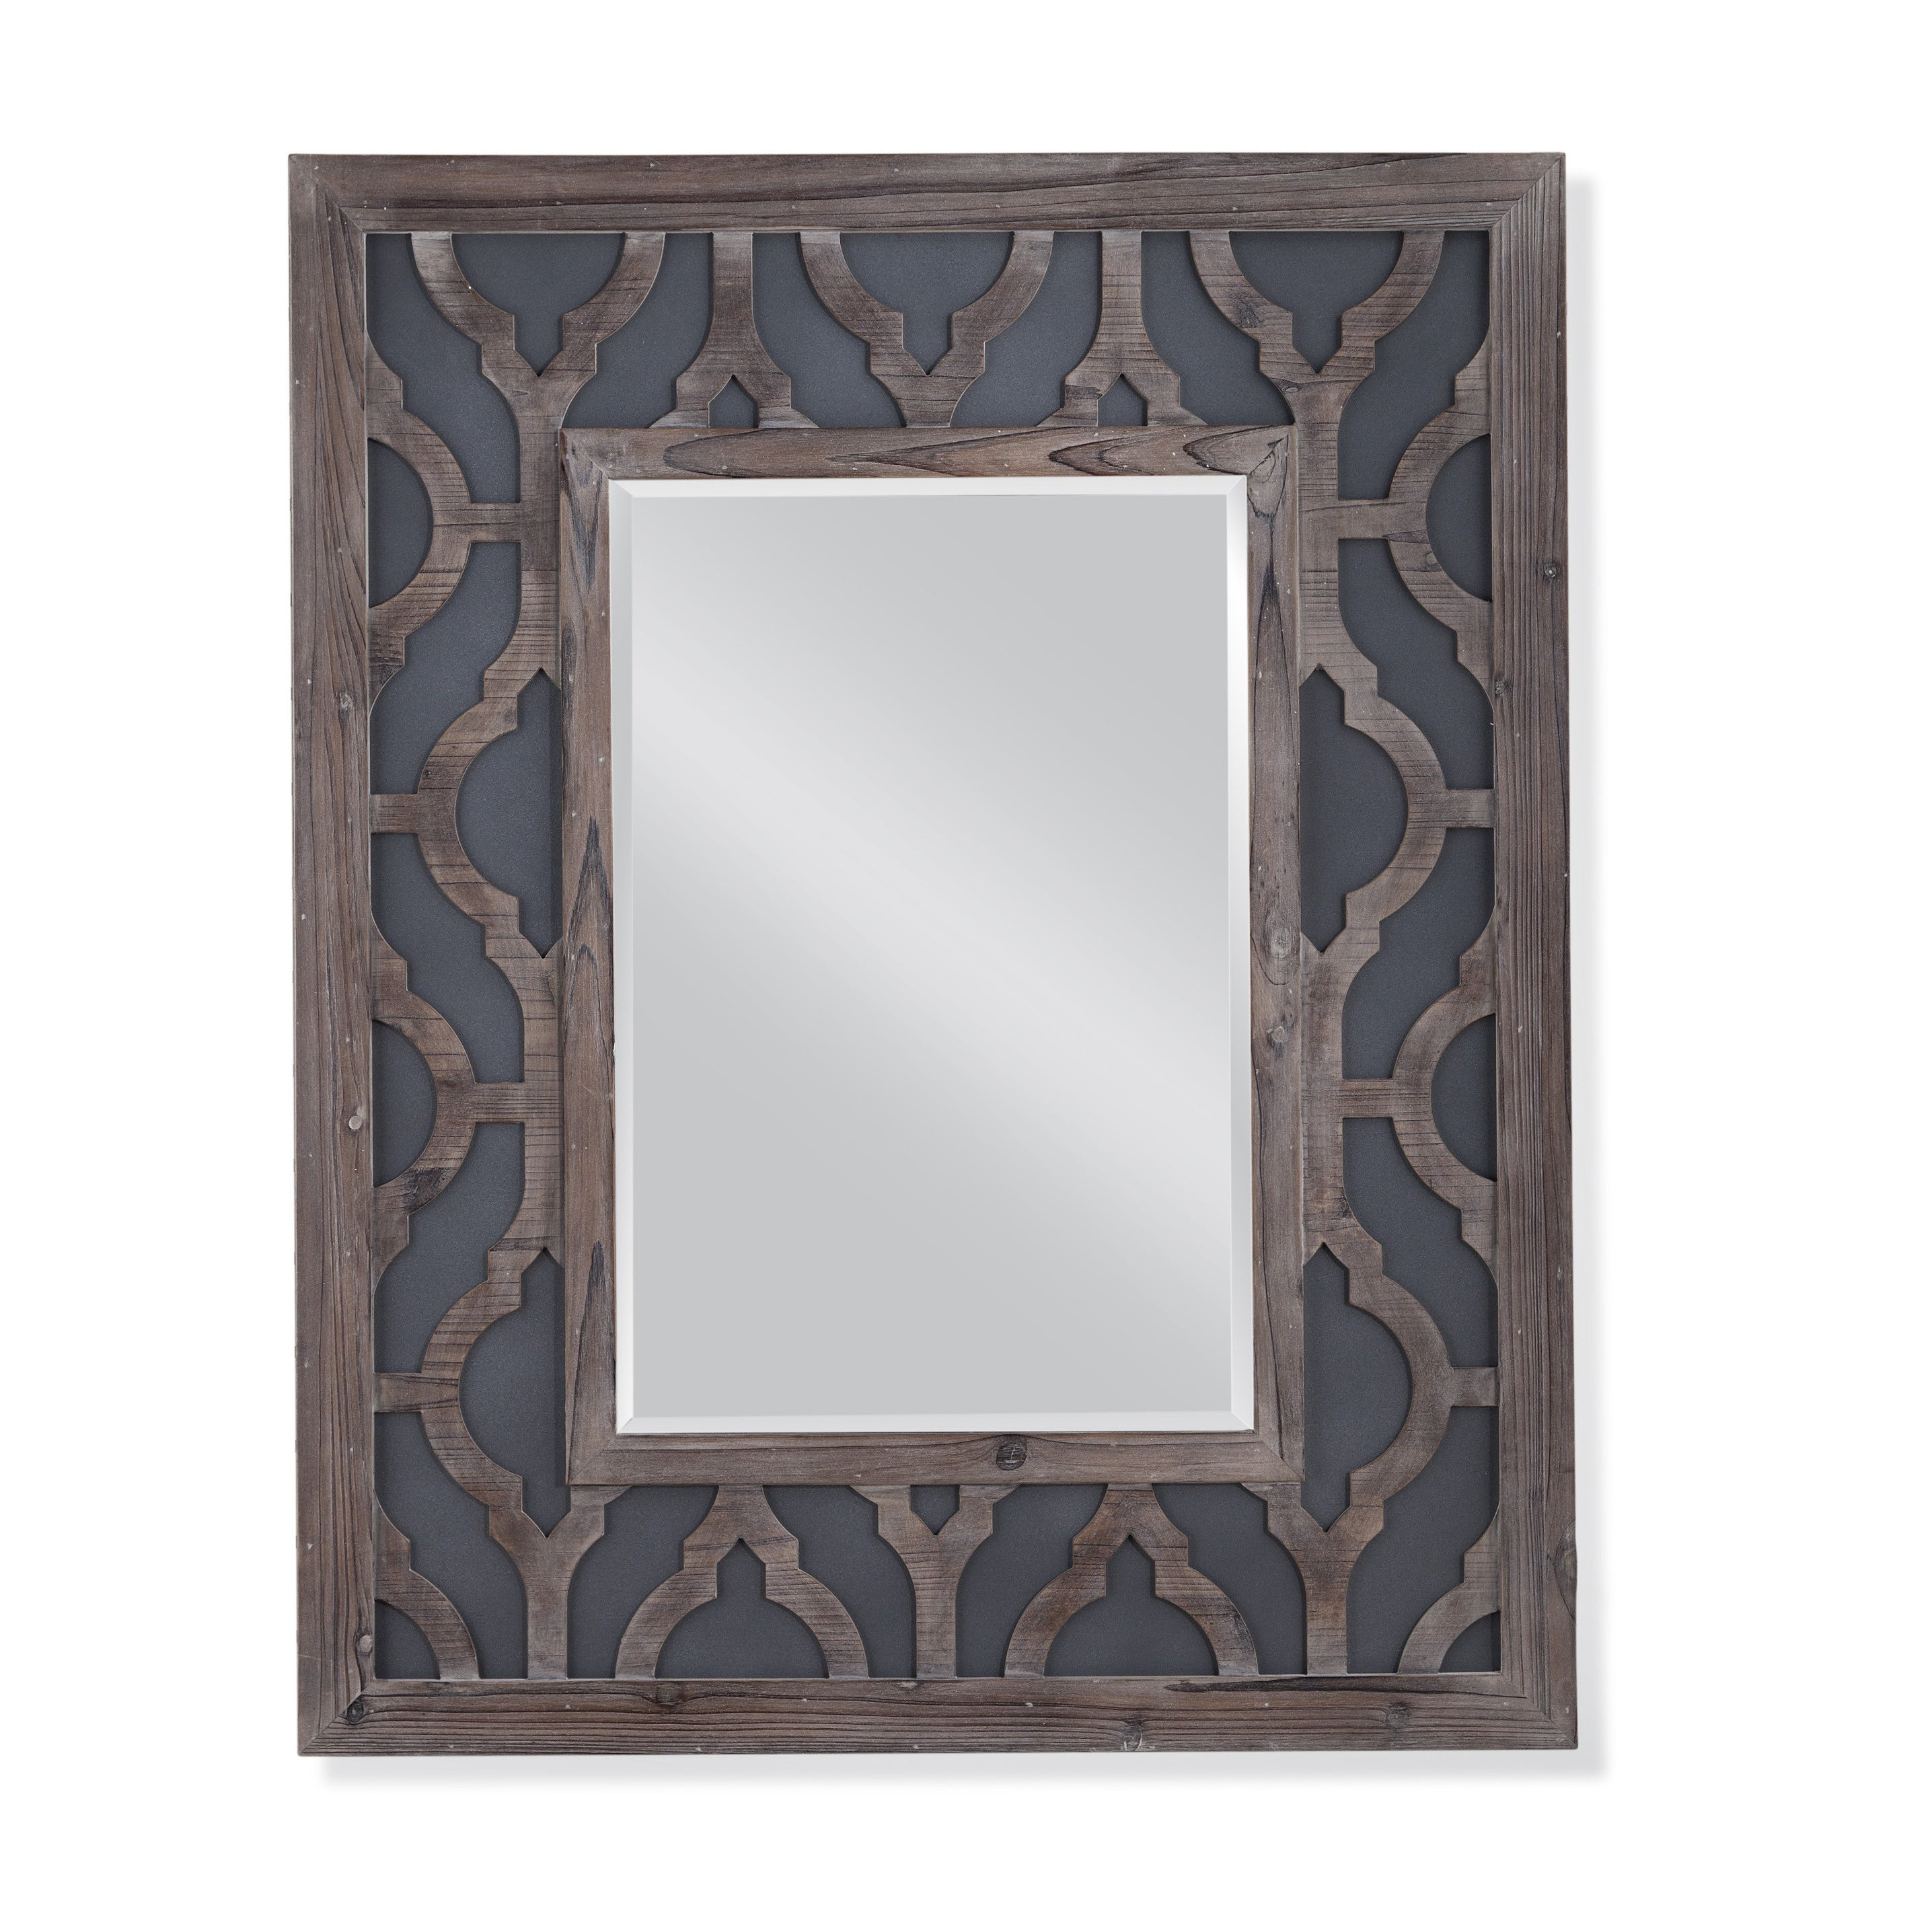 Well Liked Bassett Mirror Lavanne Wall Mirror With Grey Frame Inside Bassett Wall Mirrors (View 12 of 20)